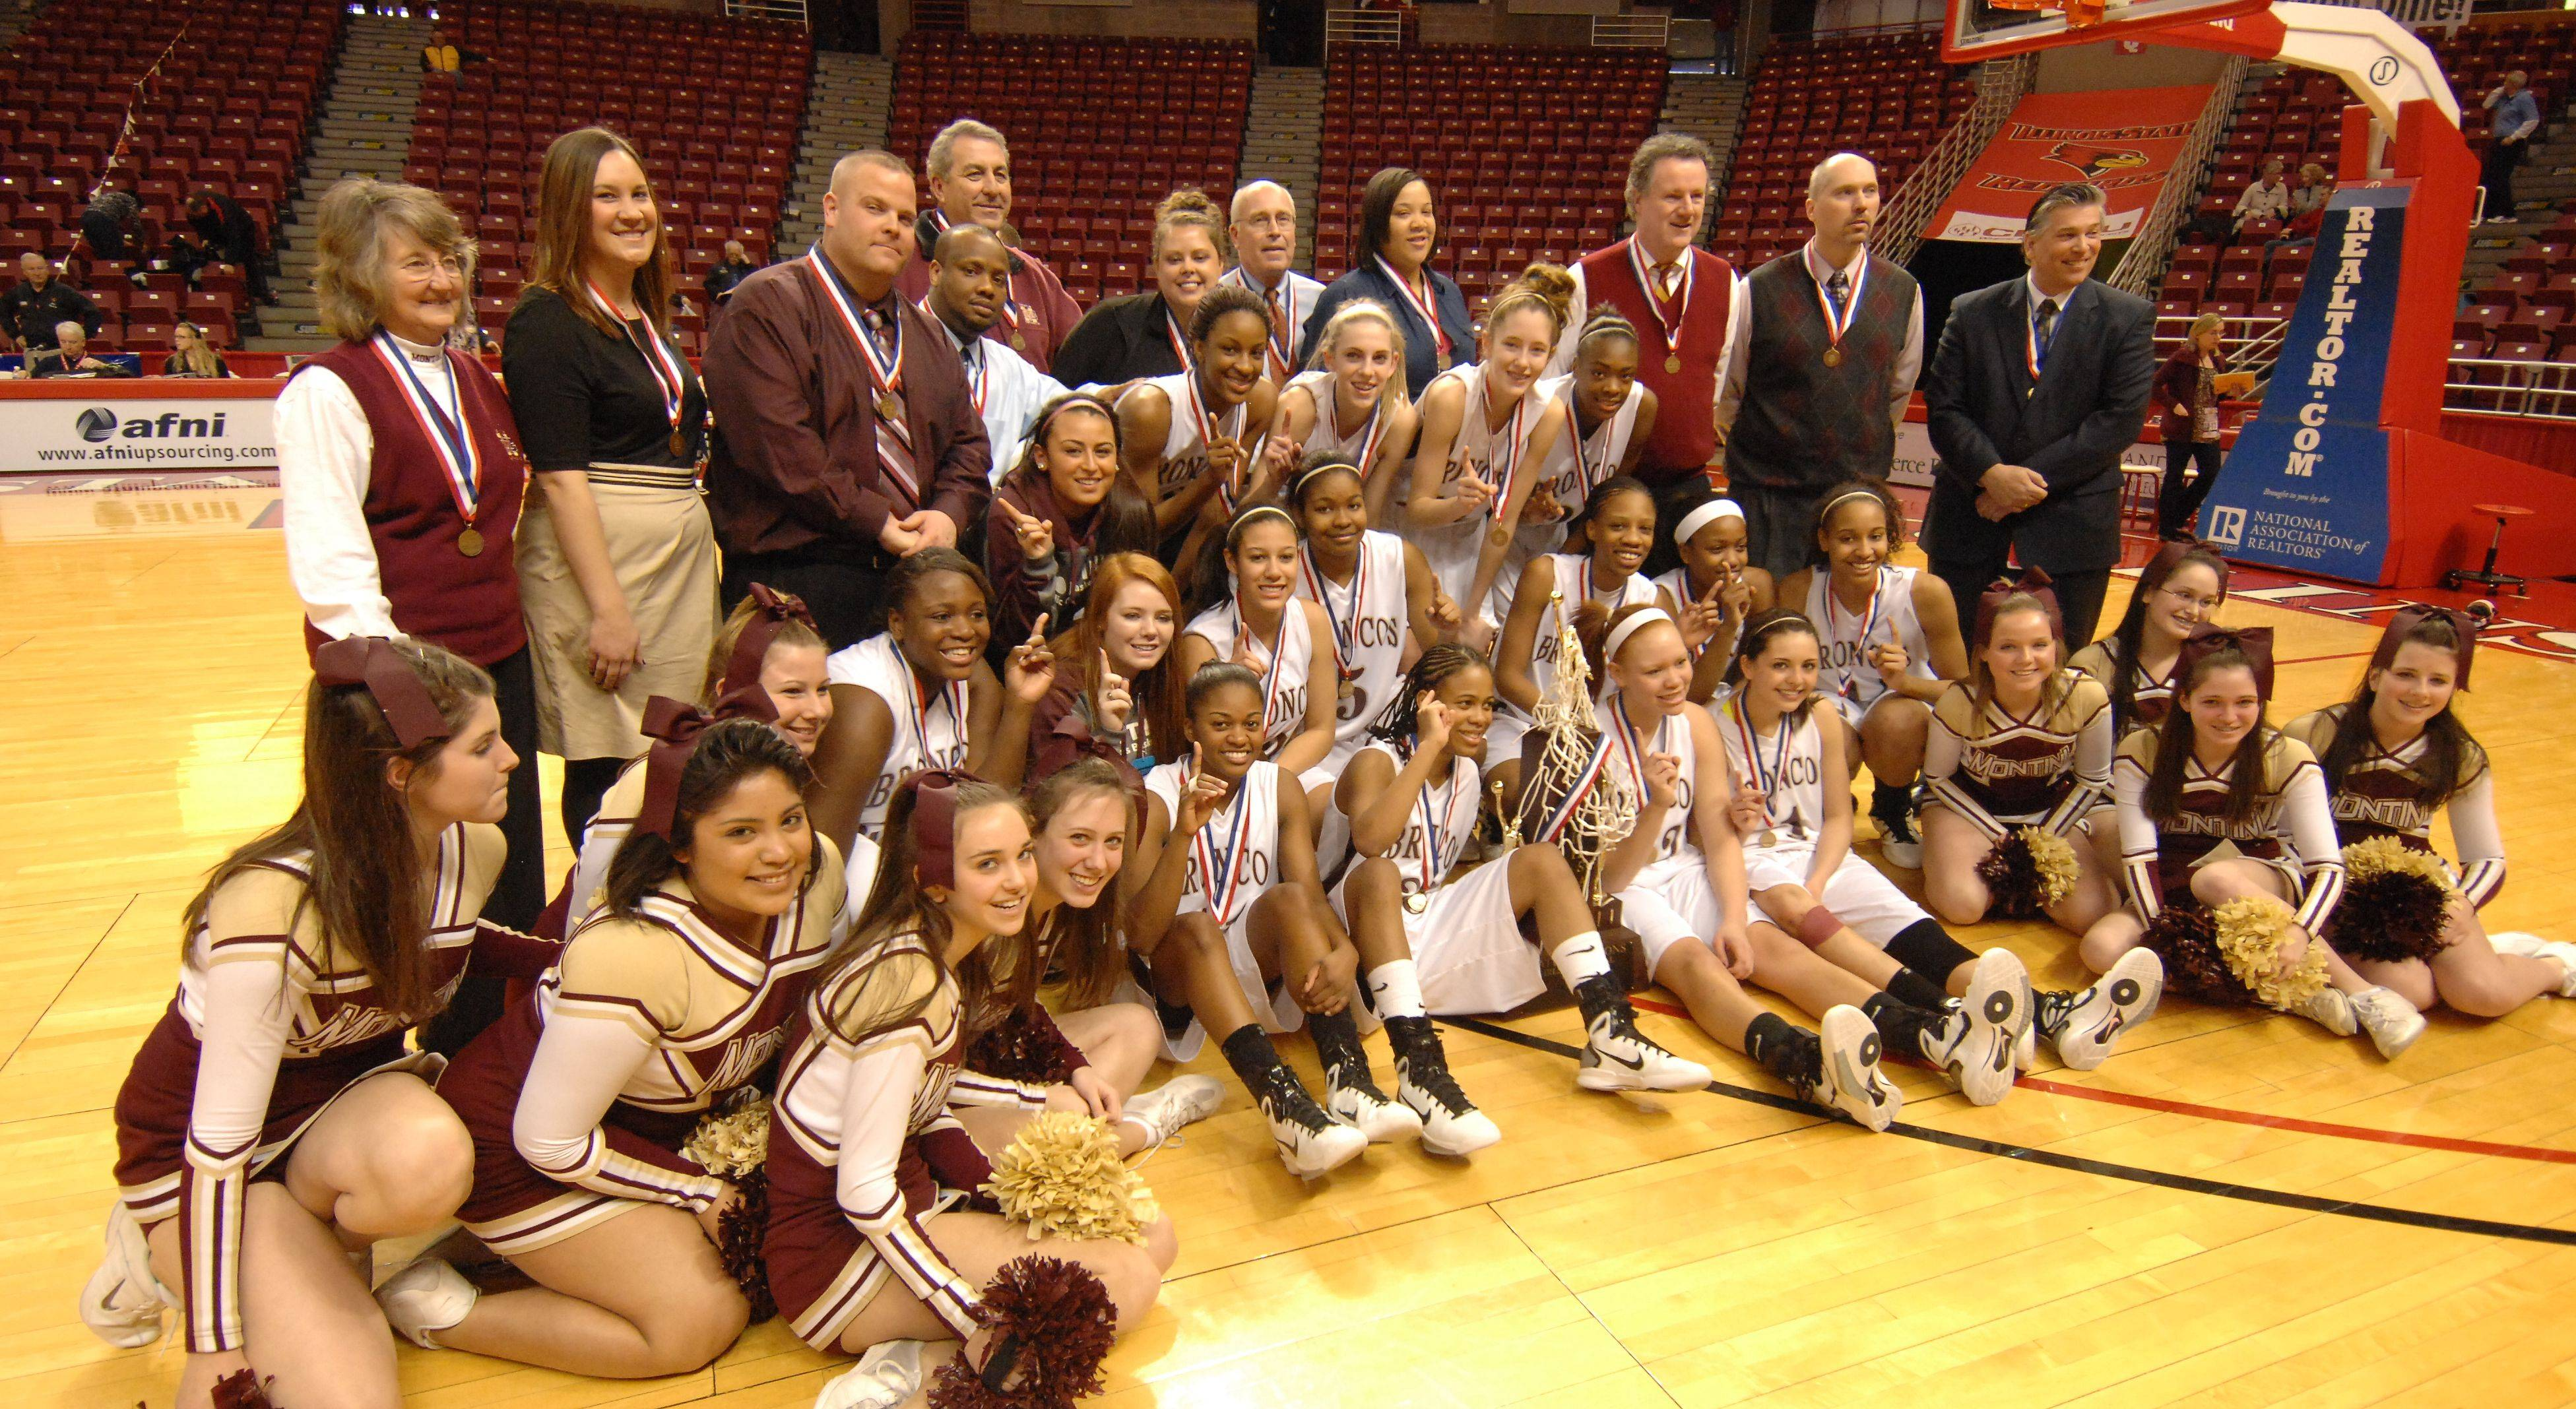 Images from the Montini vs. Hillcrest girls state Class 3A basketball game in Normal on Saturday, March 5th